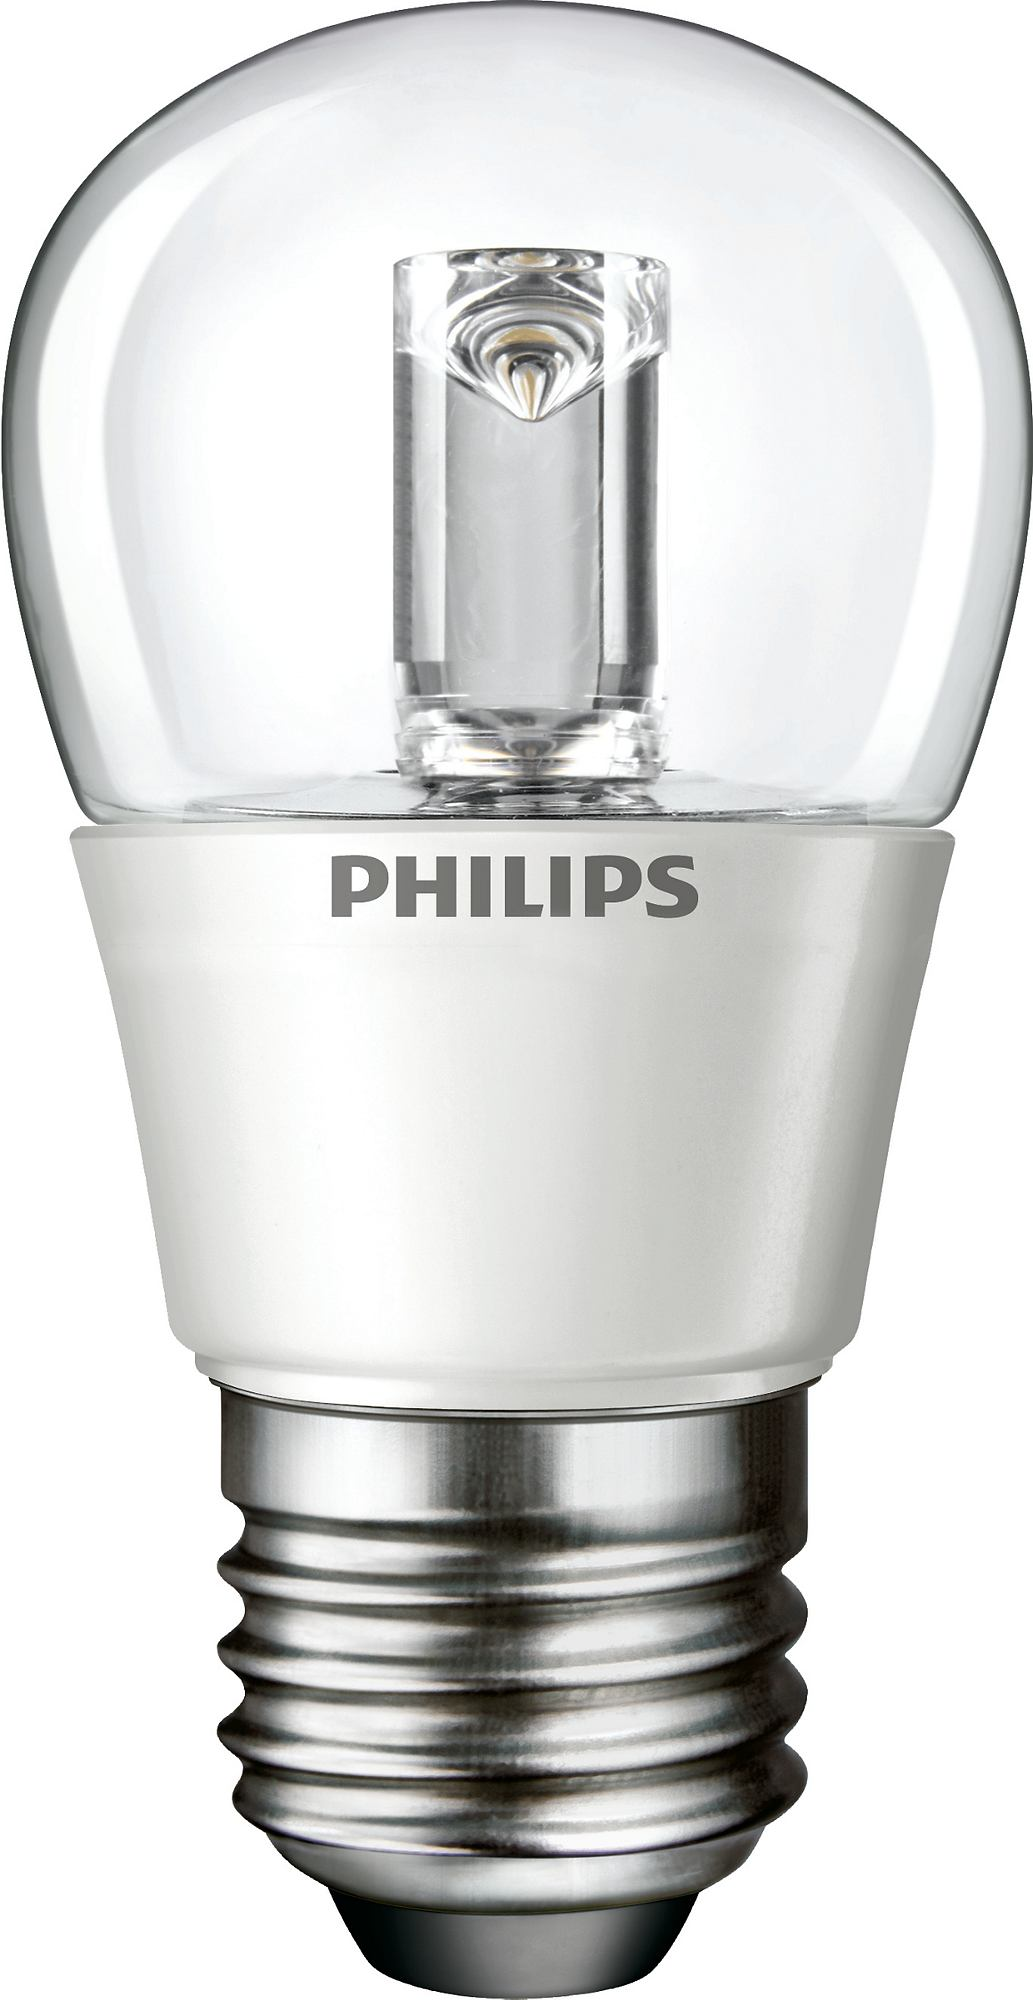 Philips LED Globes (MV)